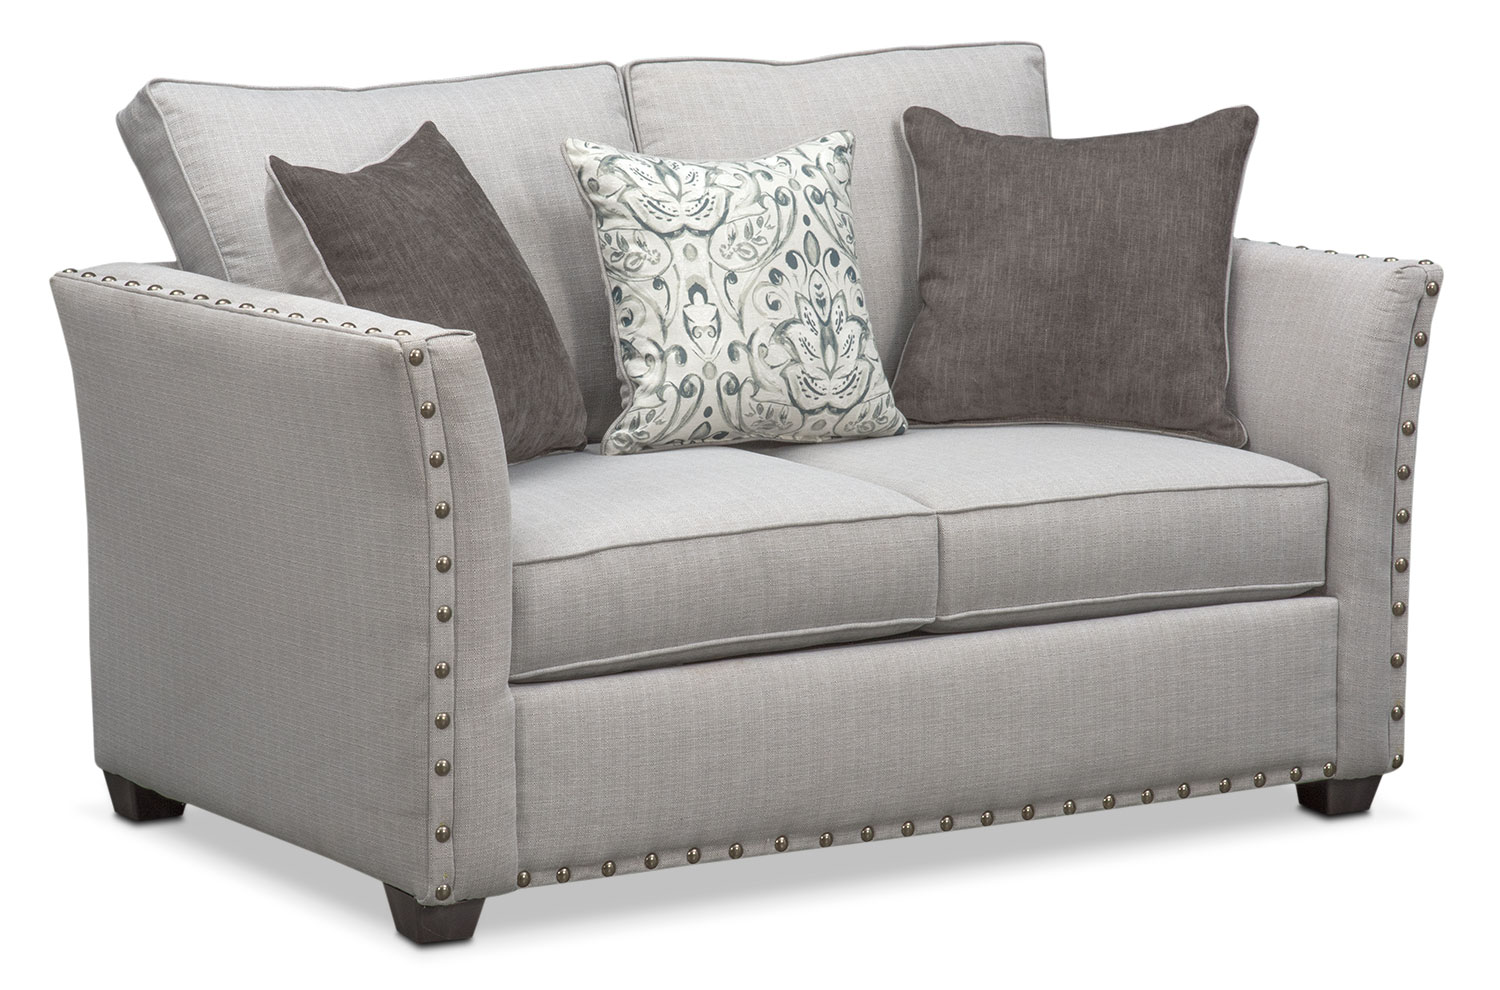 Living Room Furniture - Mckenna Loveseat